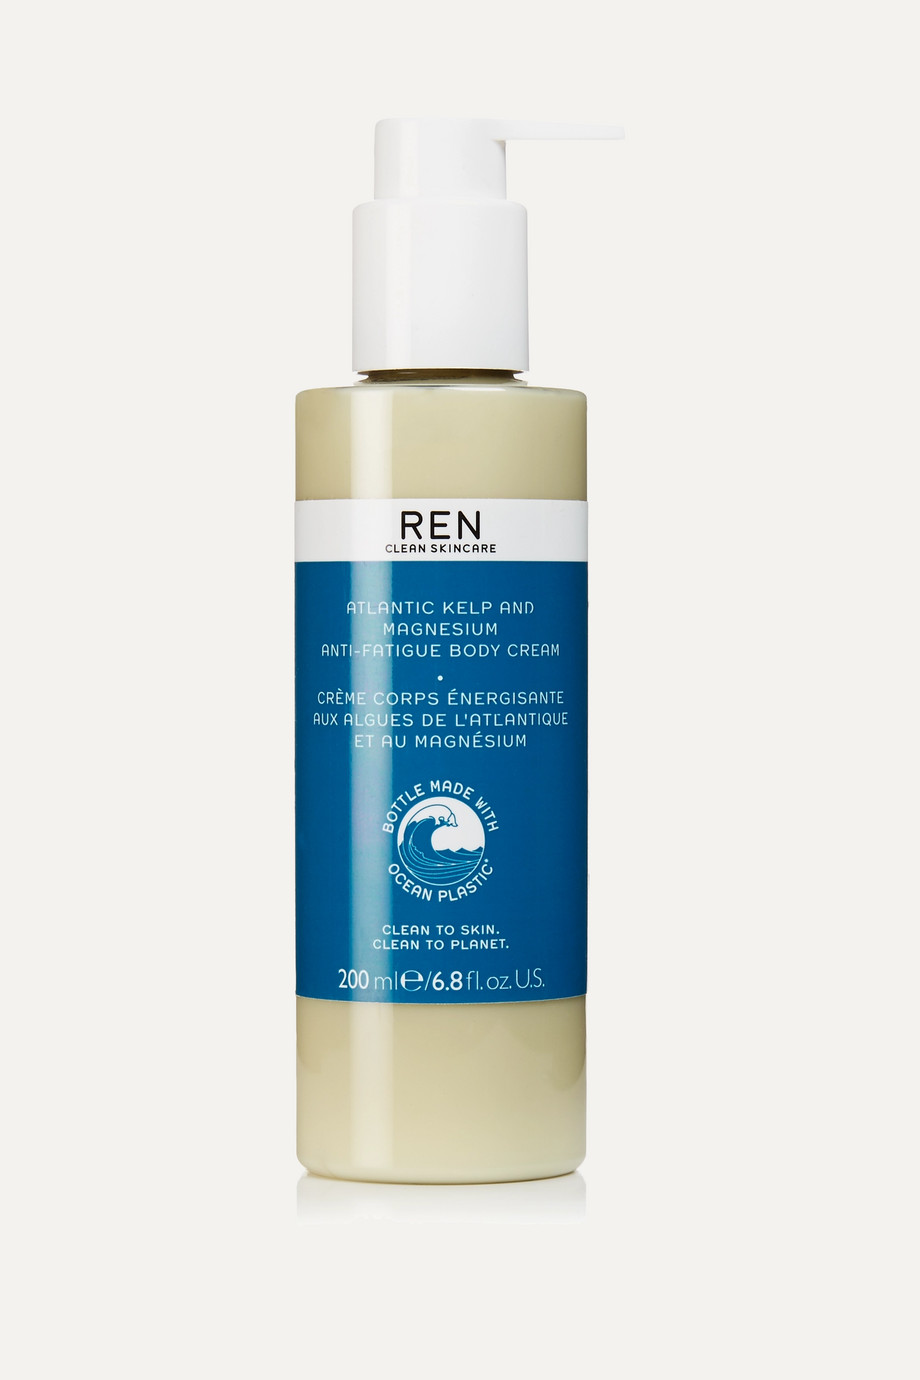 REN CLEAN SKINCARE Atlantic Kelp and Magnesium Anti-Fatigue Body Cream, 200ml